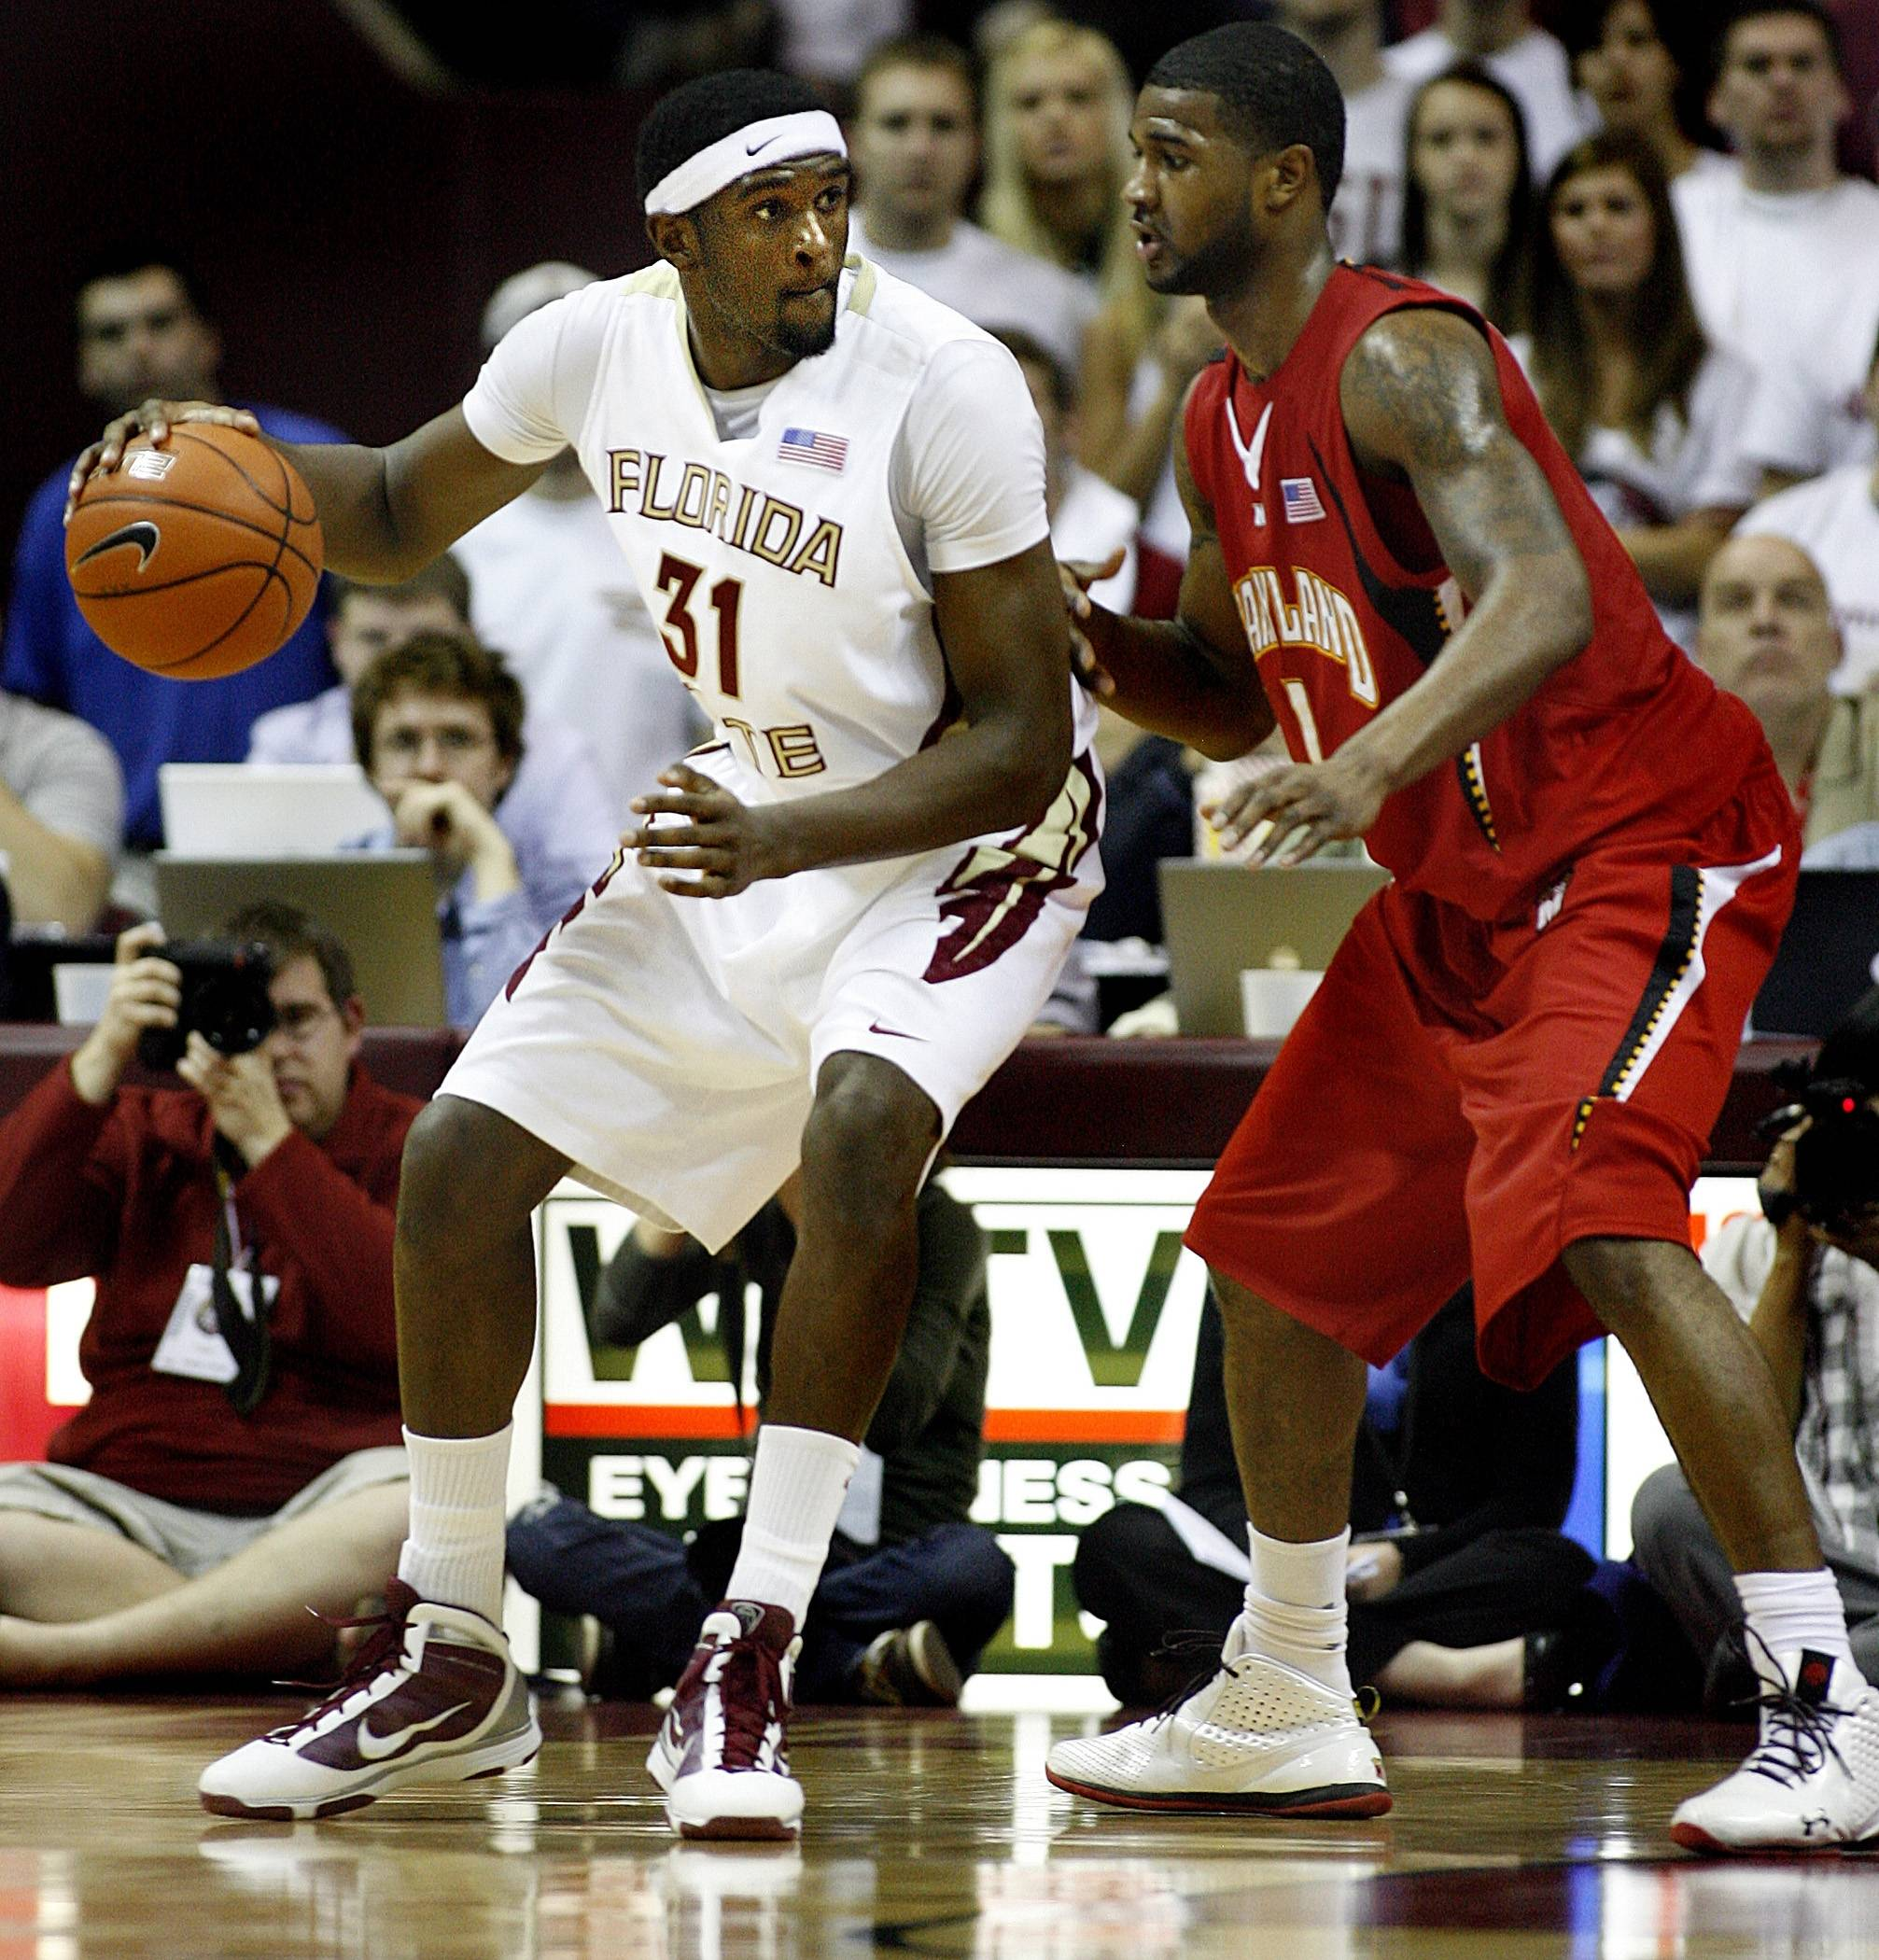 Florida State's Chris Singleton (31) moves the ball against Maryland's Landon Milbourne during an NCAA college basketball game in Tallahassee, Fla., on Thursday, Feb 4, 2010. (AP Photo/Tallahassee Democrat, Glenn Beil)